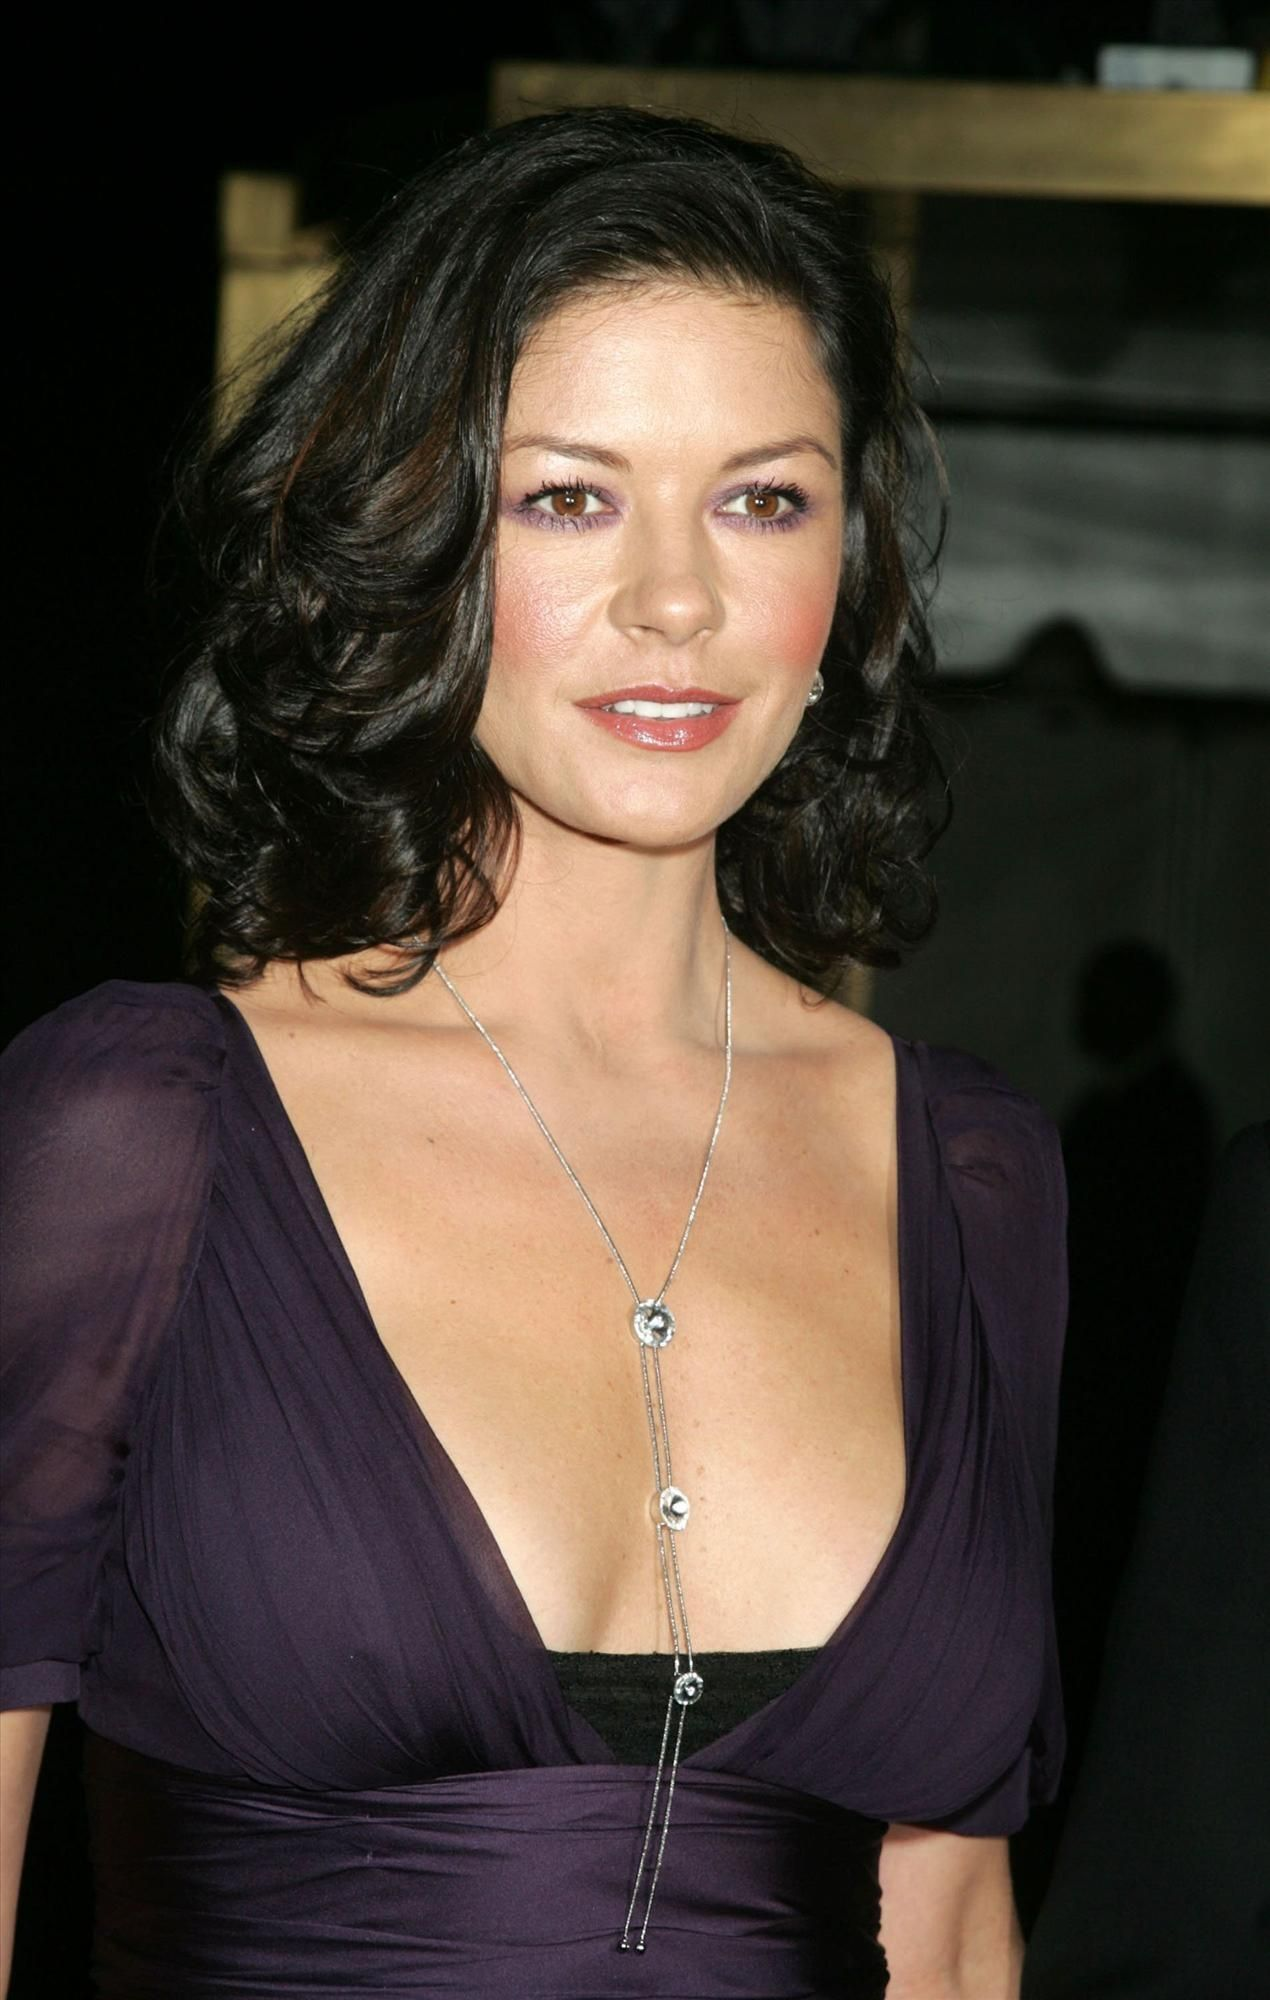 Sensational Catherine Zeta Jones | Catherine Zeta Jones ... Catherine Zeta Jones